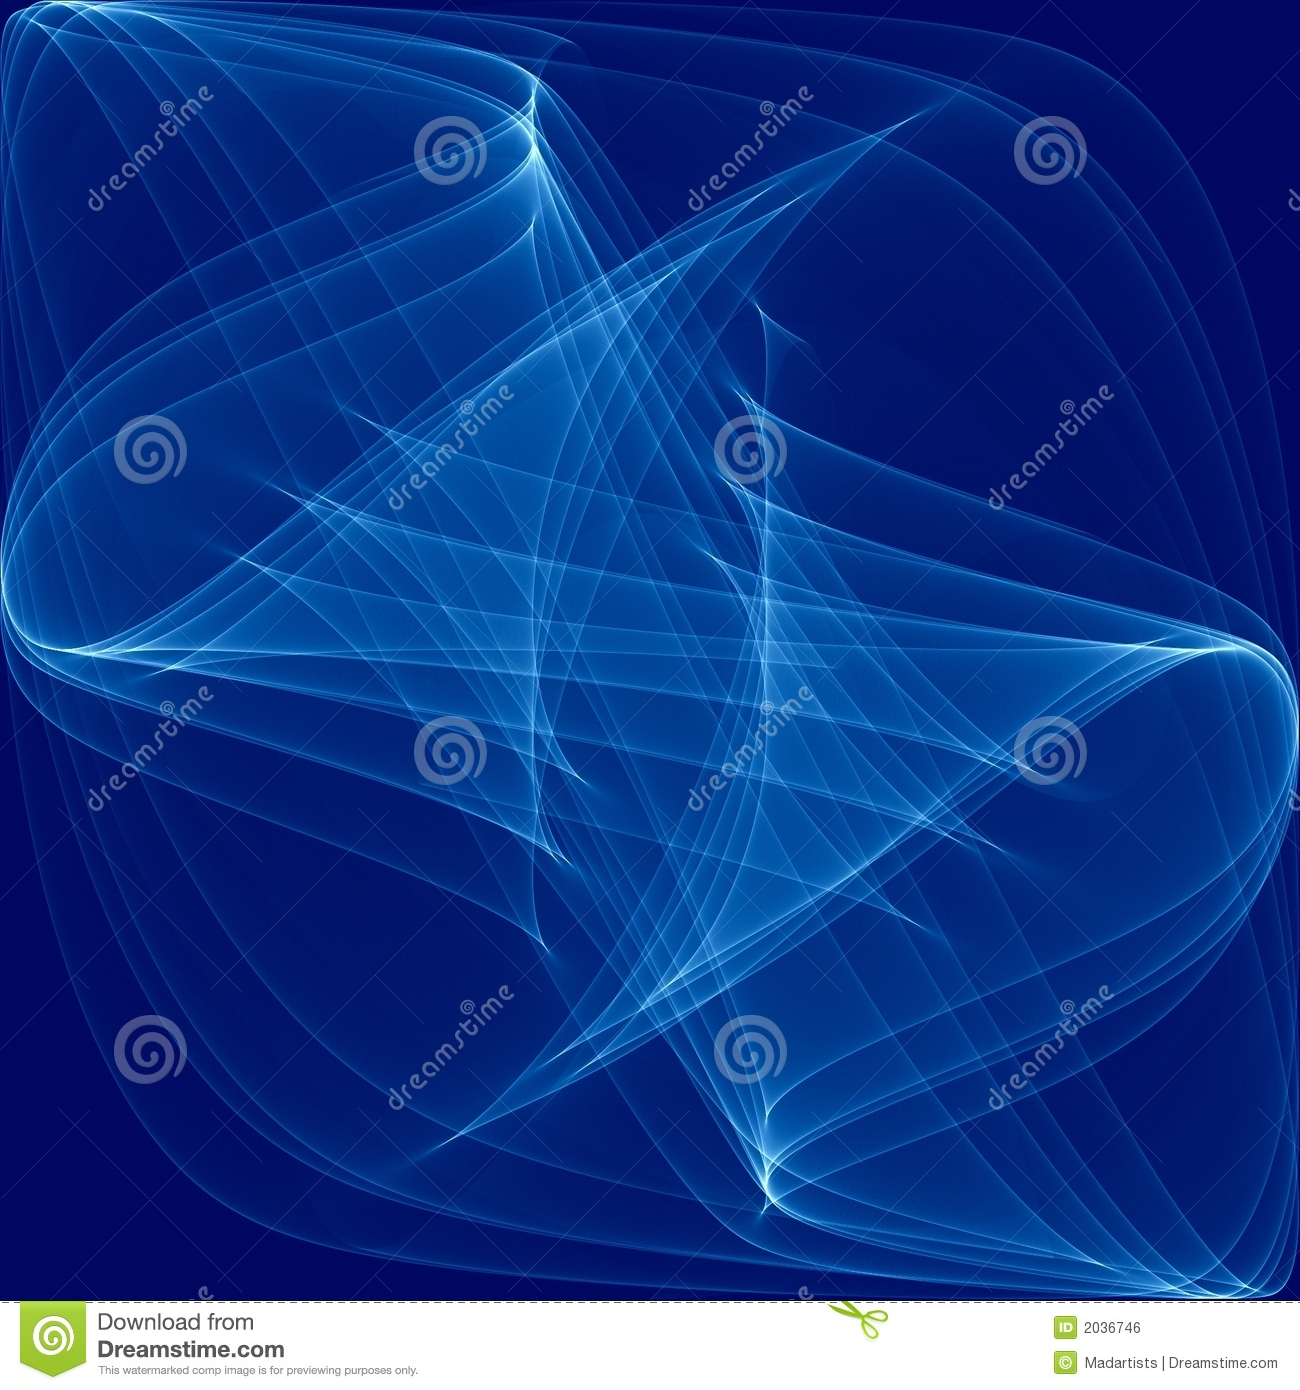 Blue Swirling Wavy Lines Glow Royalty Free Stock Image